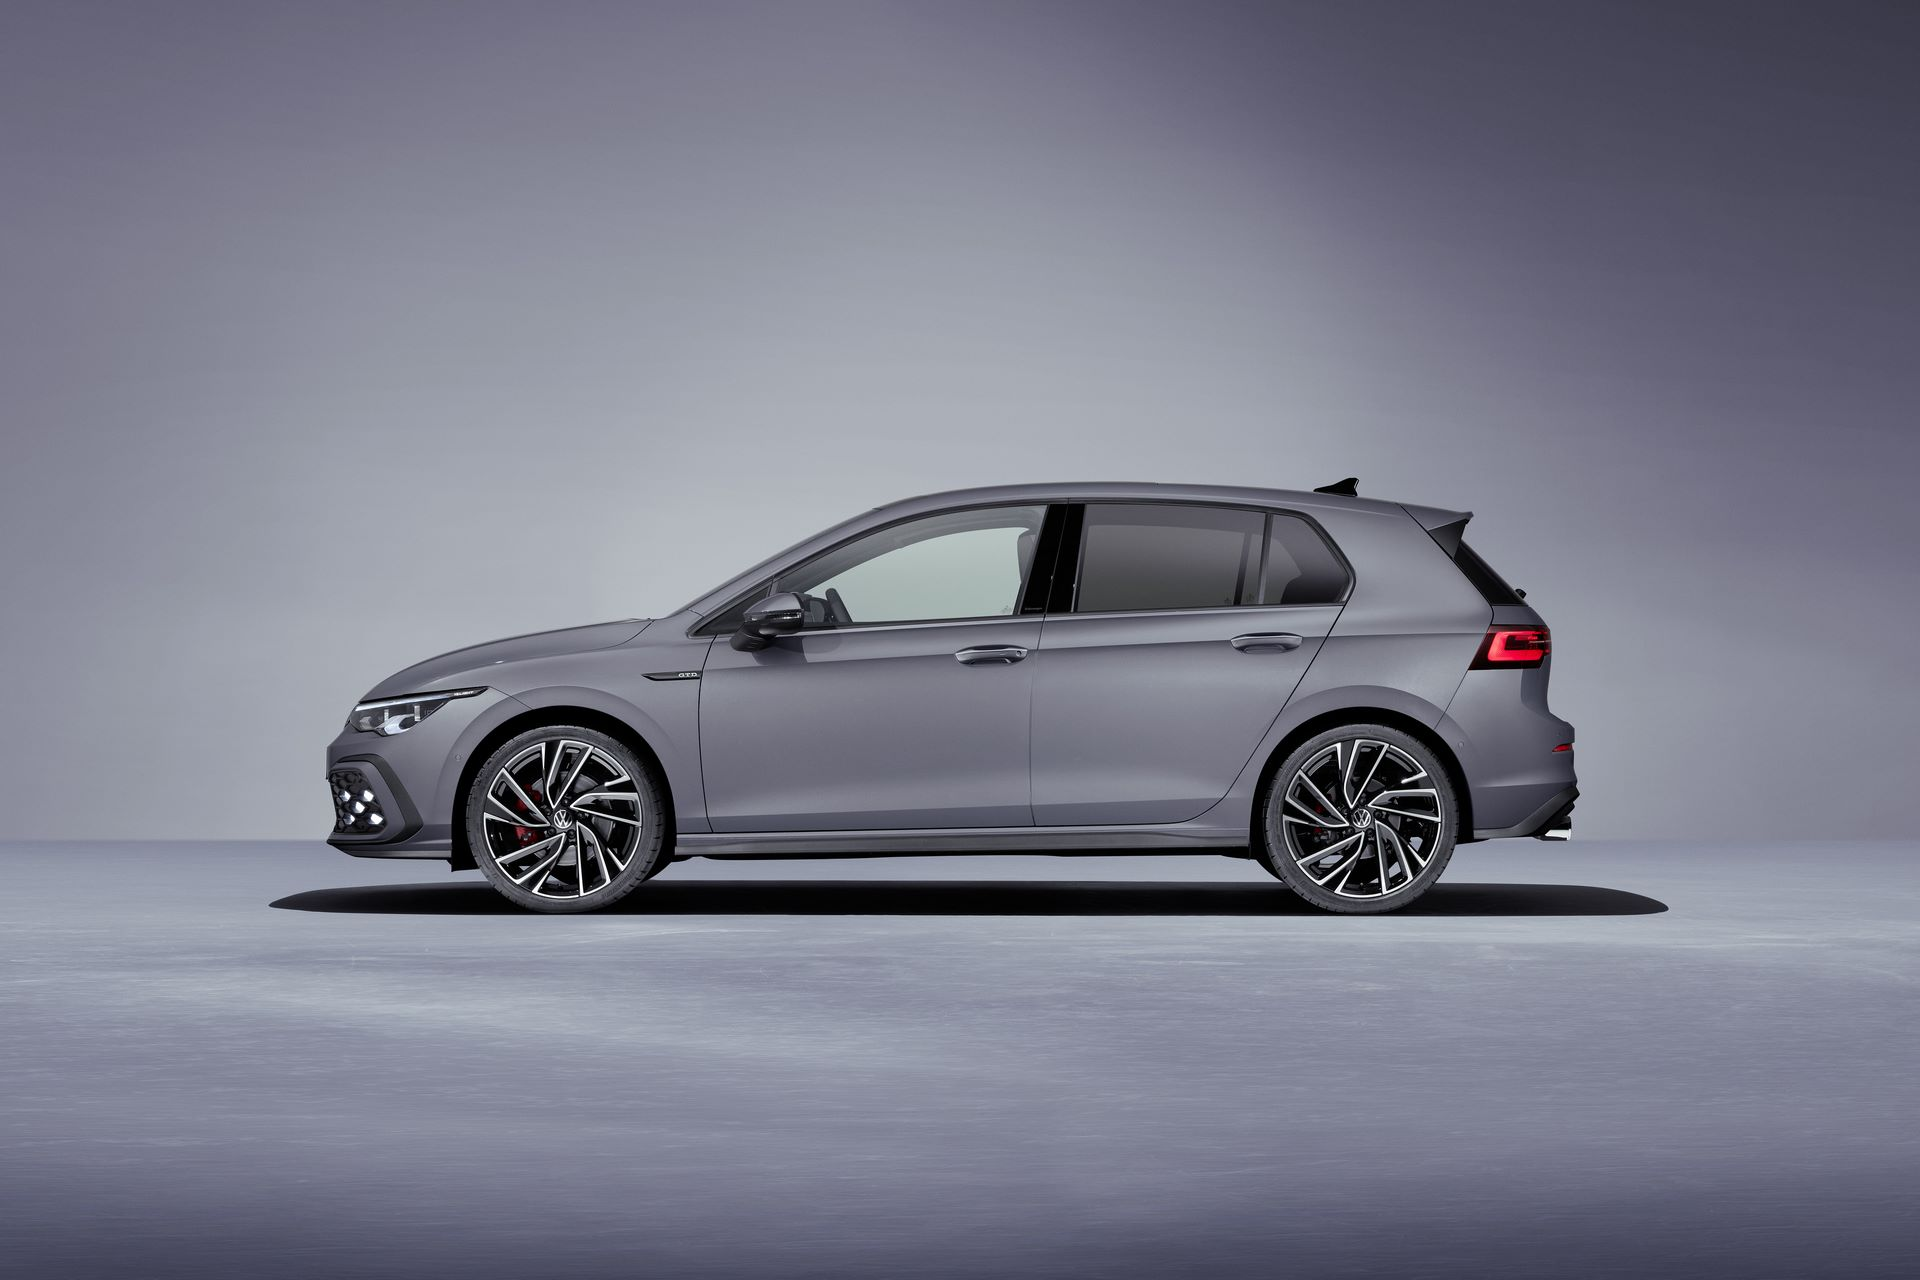 The new Volkswagen Golf GTD